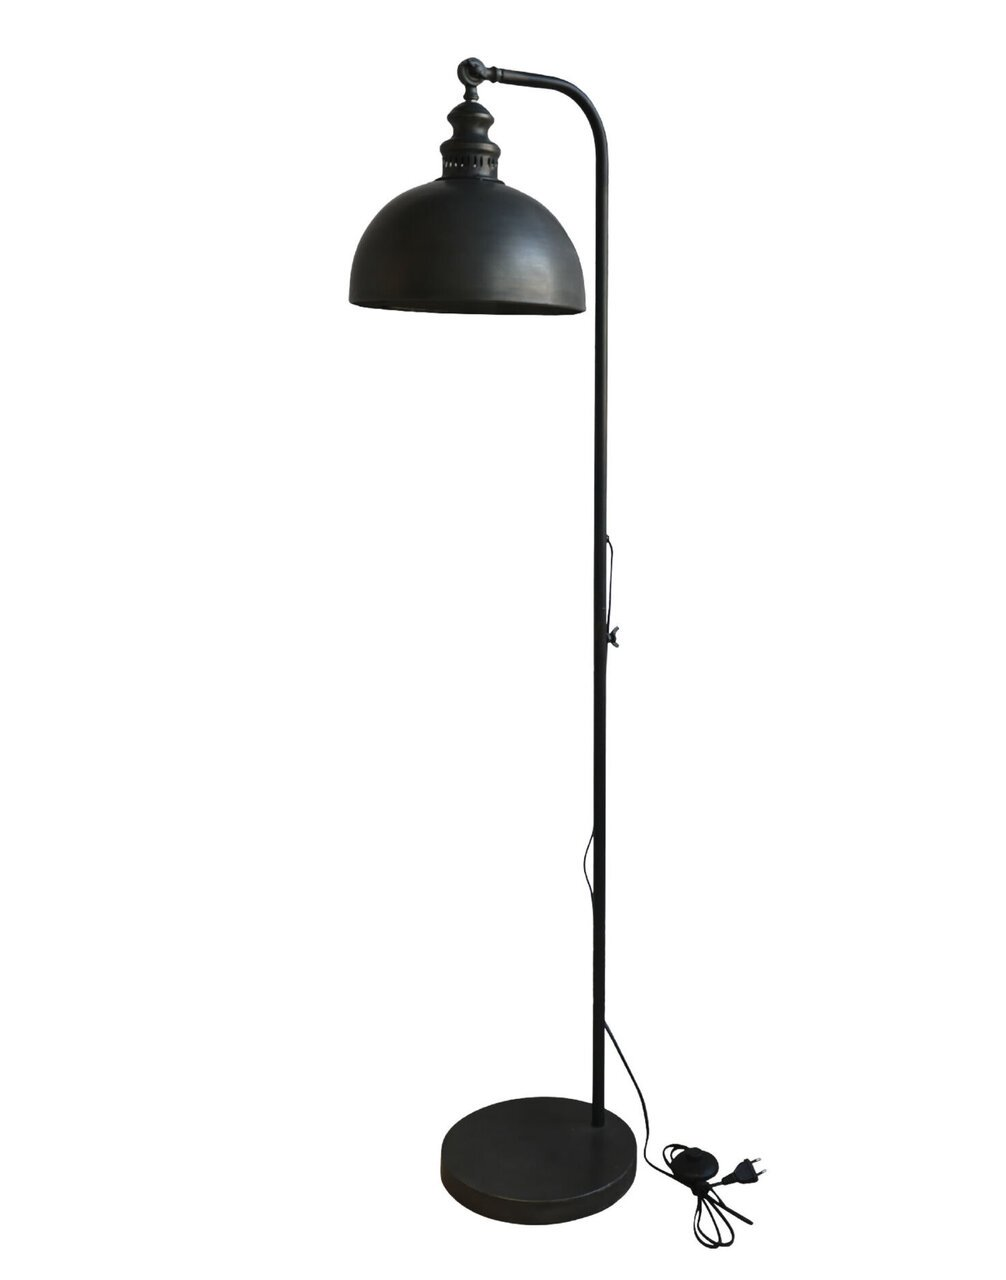 Chic Antique Stehlampe Factory Style